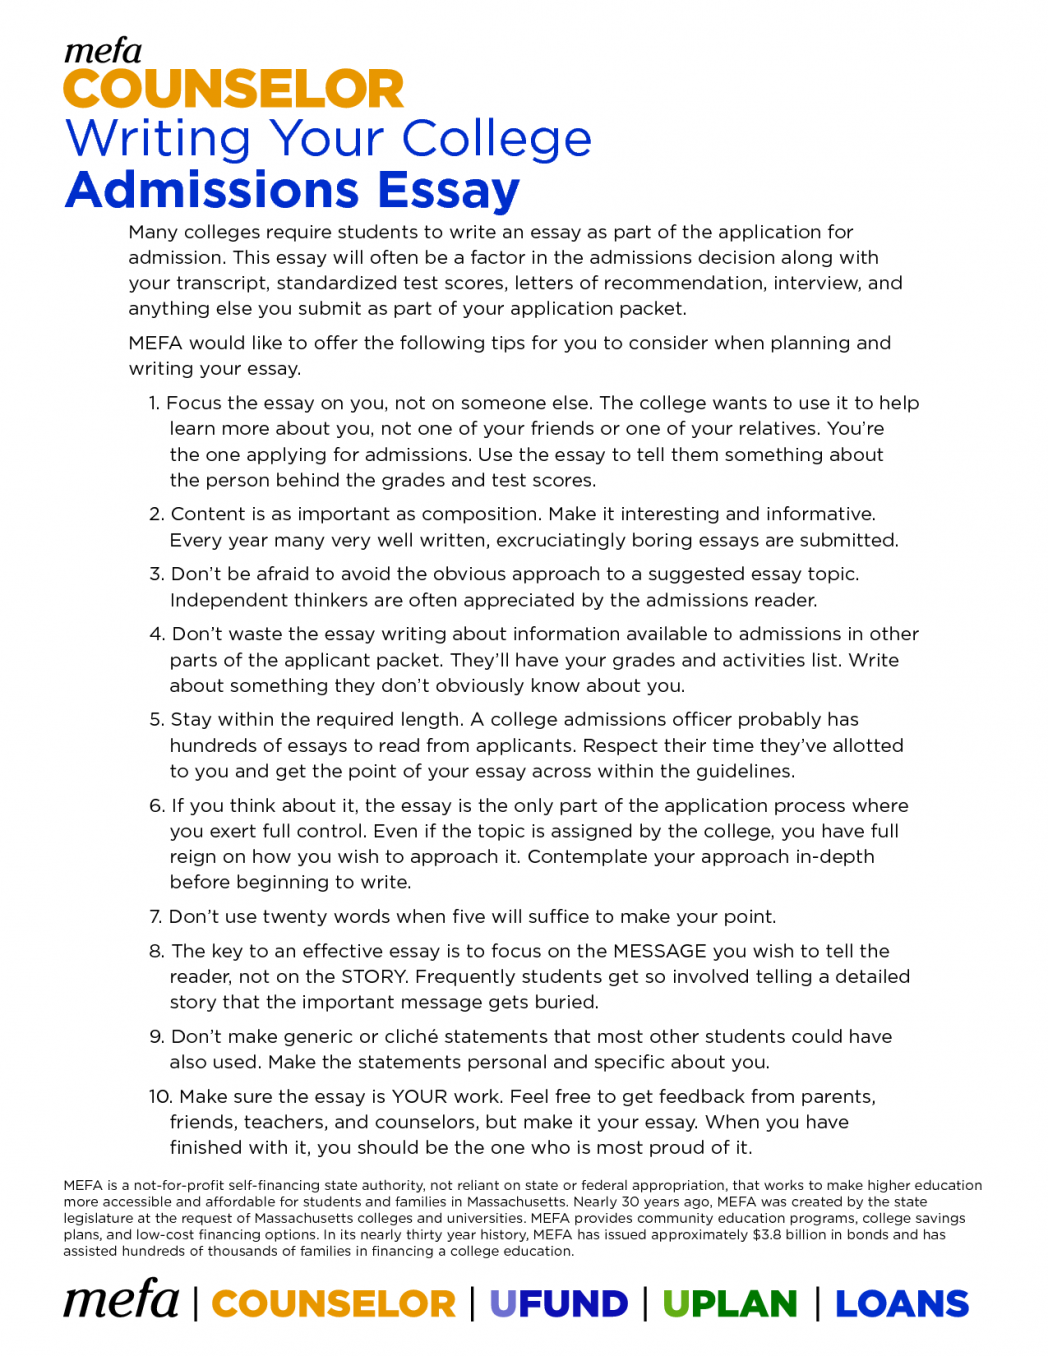 003 Writing Counselling Essay Get Help With Your Business Plan Effective Ppt F4r3a Course Communication Academic For Ielts English Samples Pdf Tips In Hindi 1048x1356 Example Excellent Topics Questions Guidance And Full